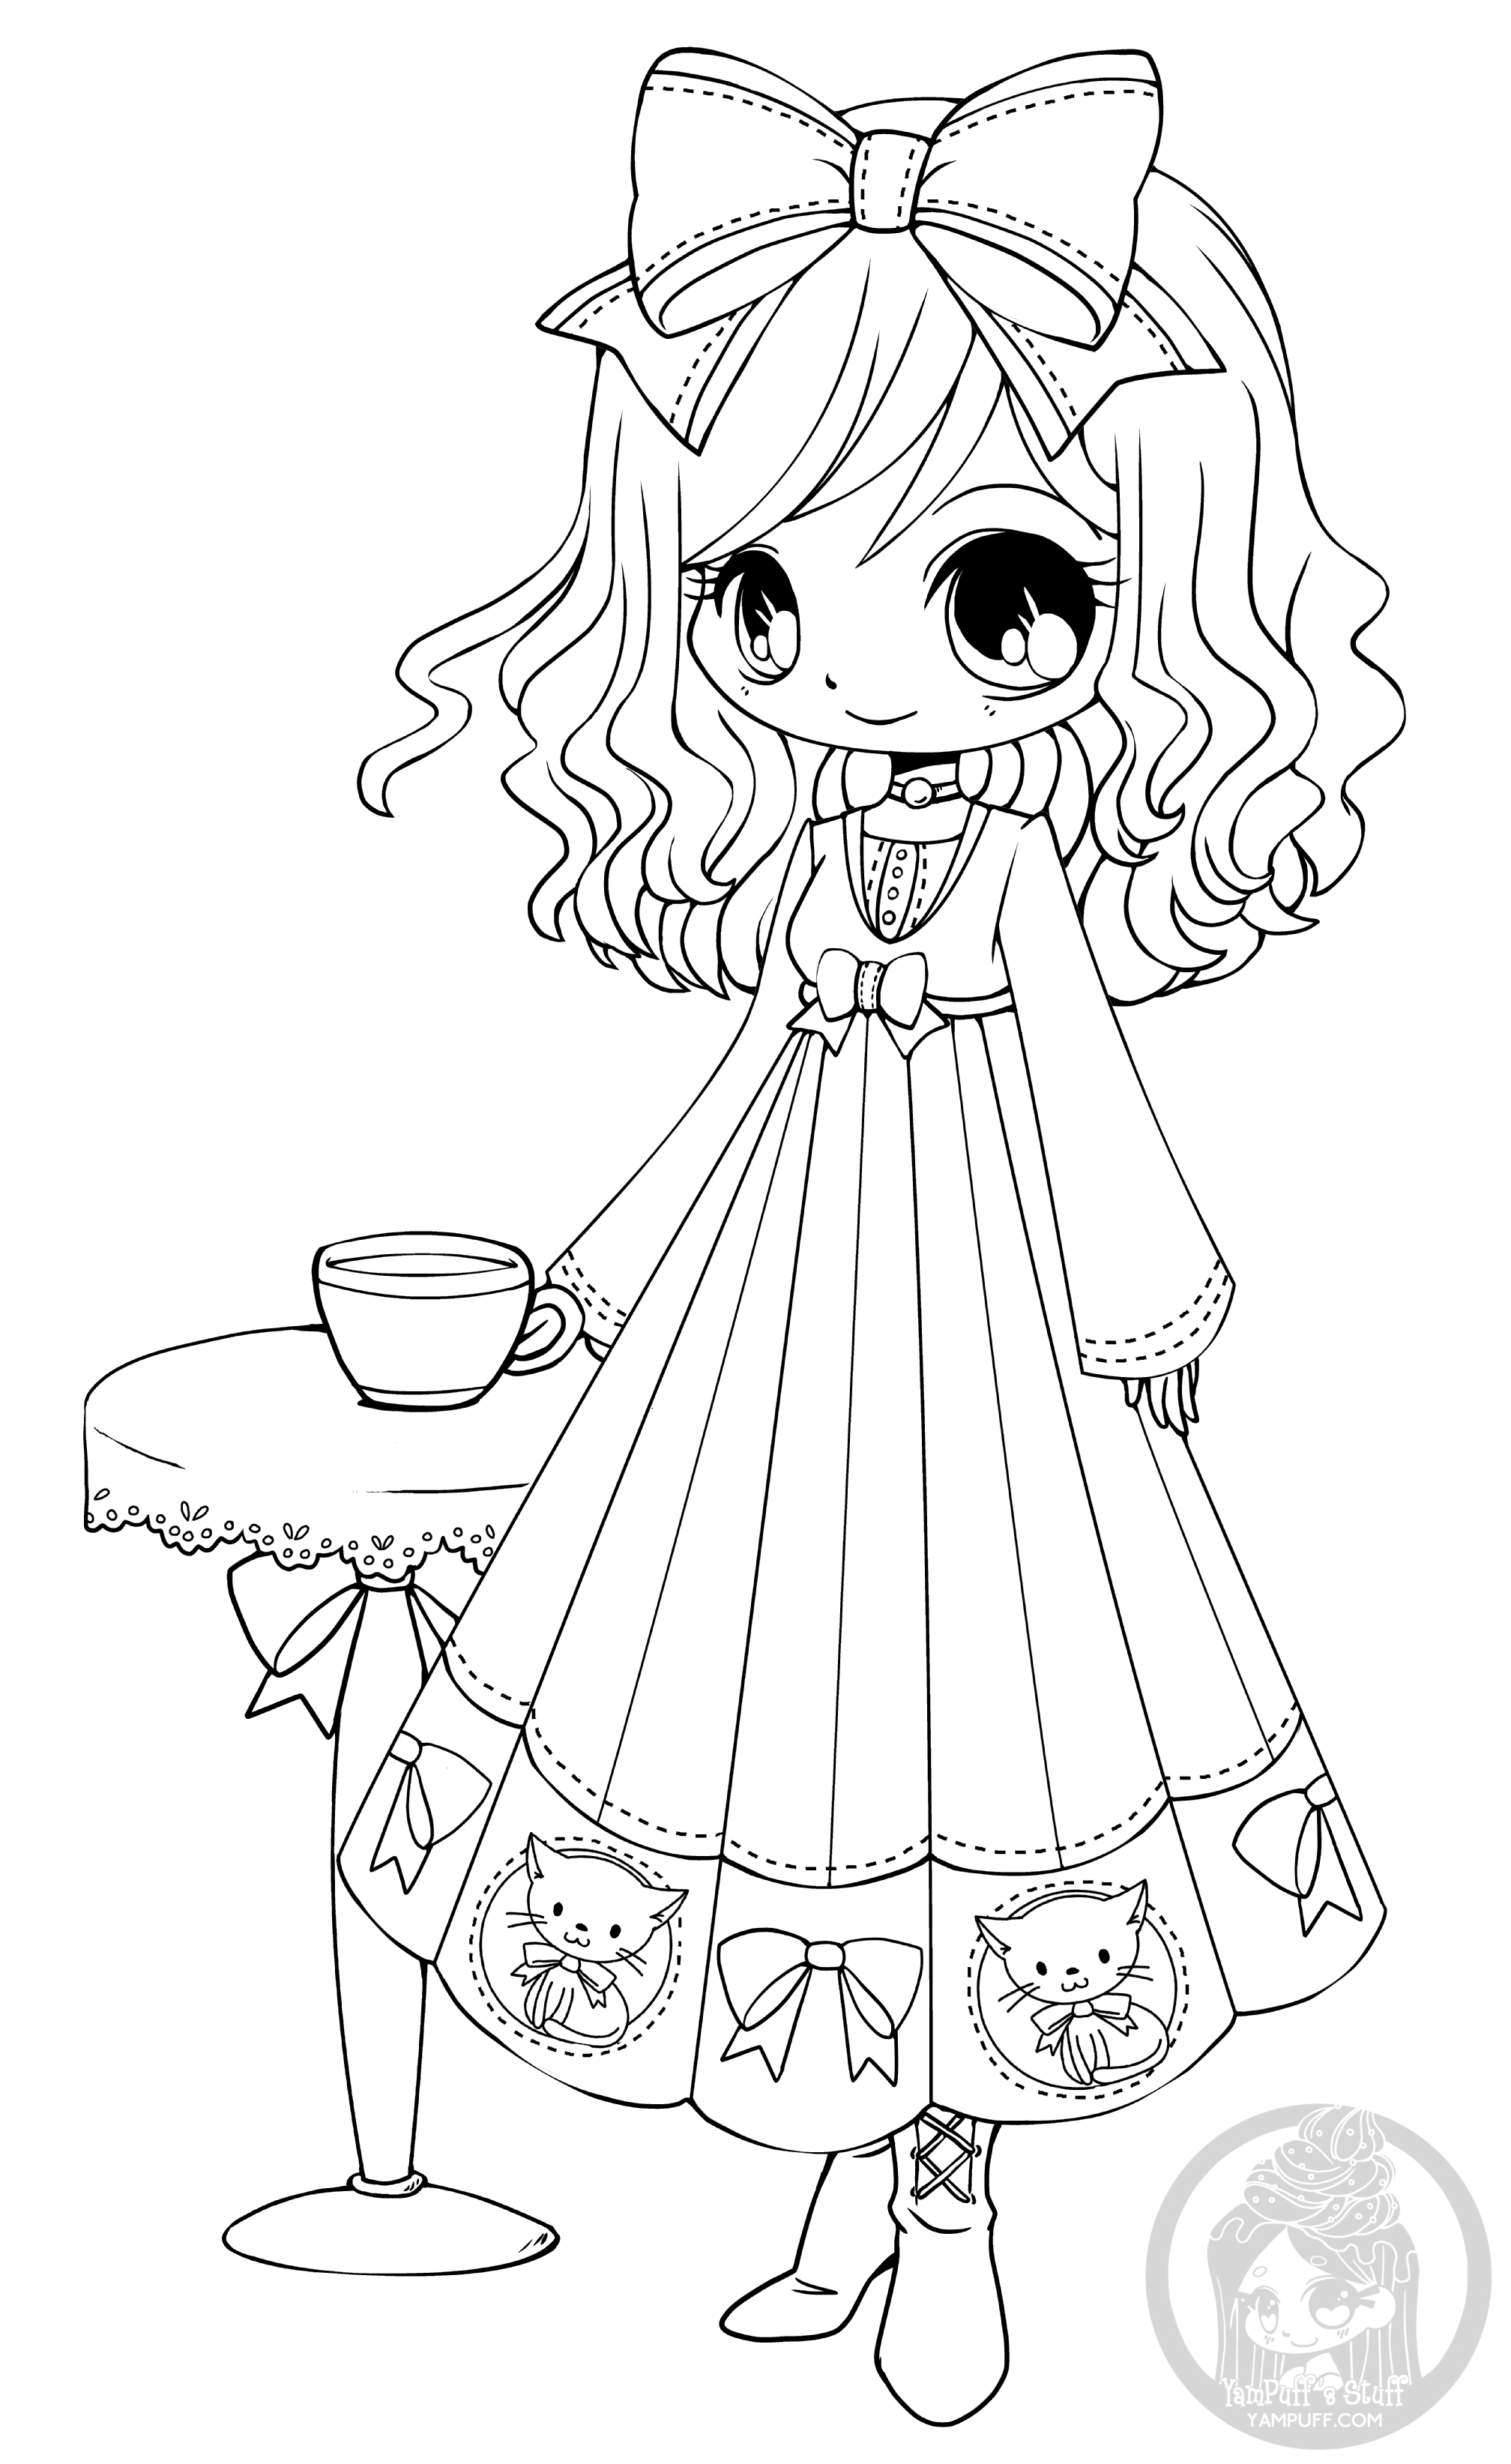 chibi girls coloring pages chibi coloring pages to download and print for free pages girls chibi coloring